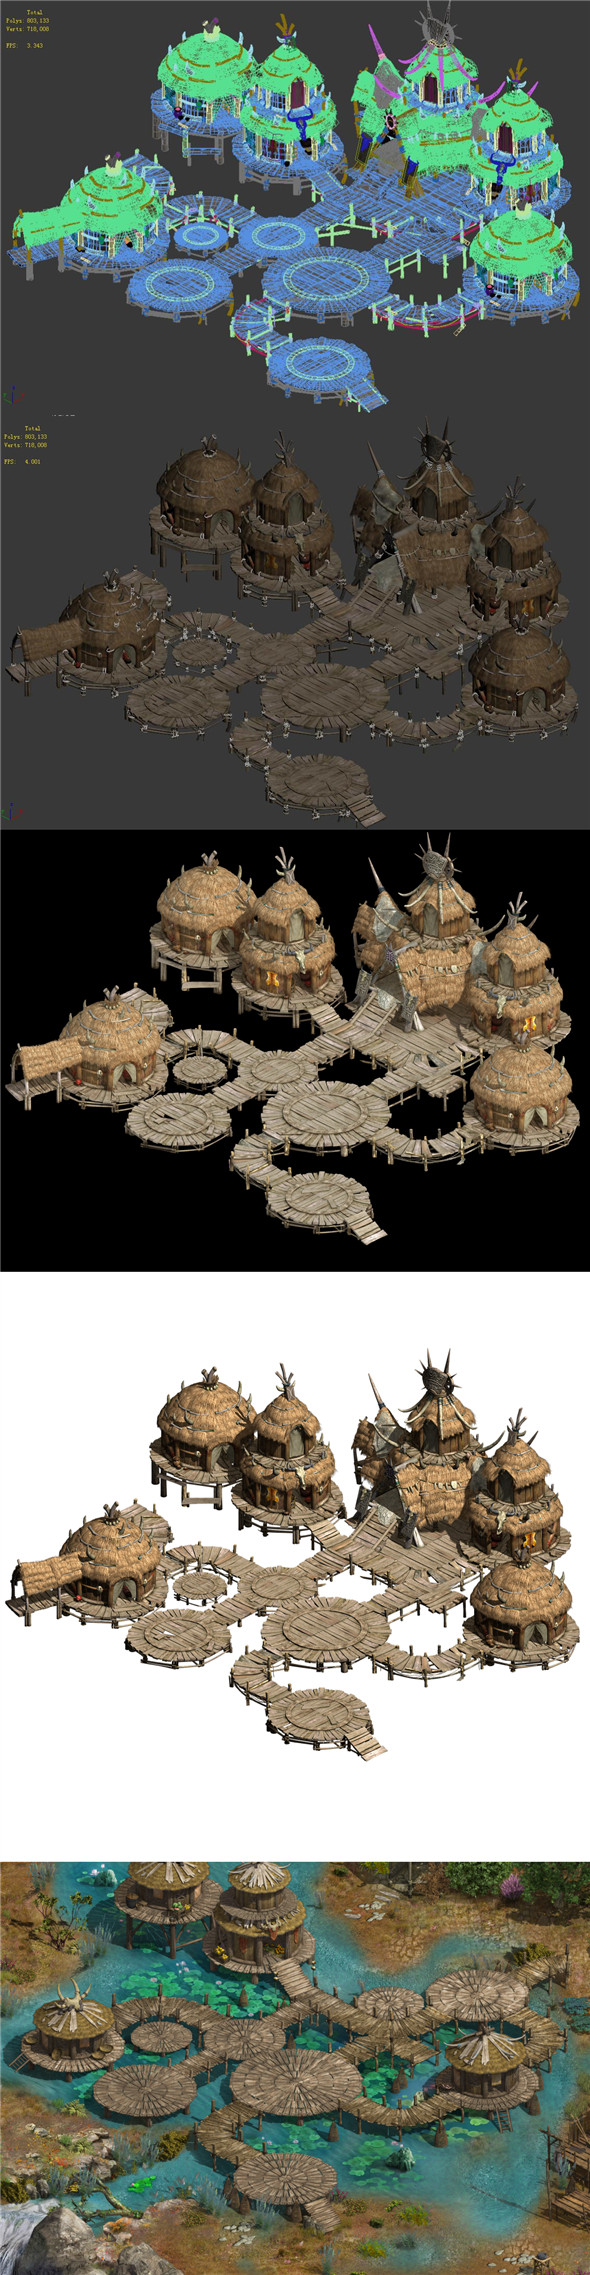 Primitive tribes - water village architecture - 3DOcean Item for Sale